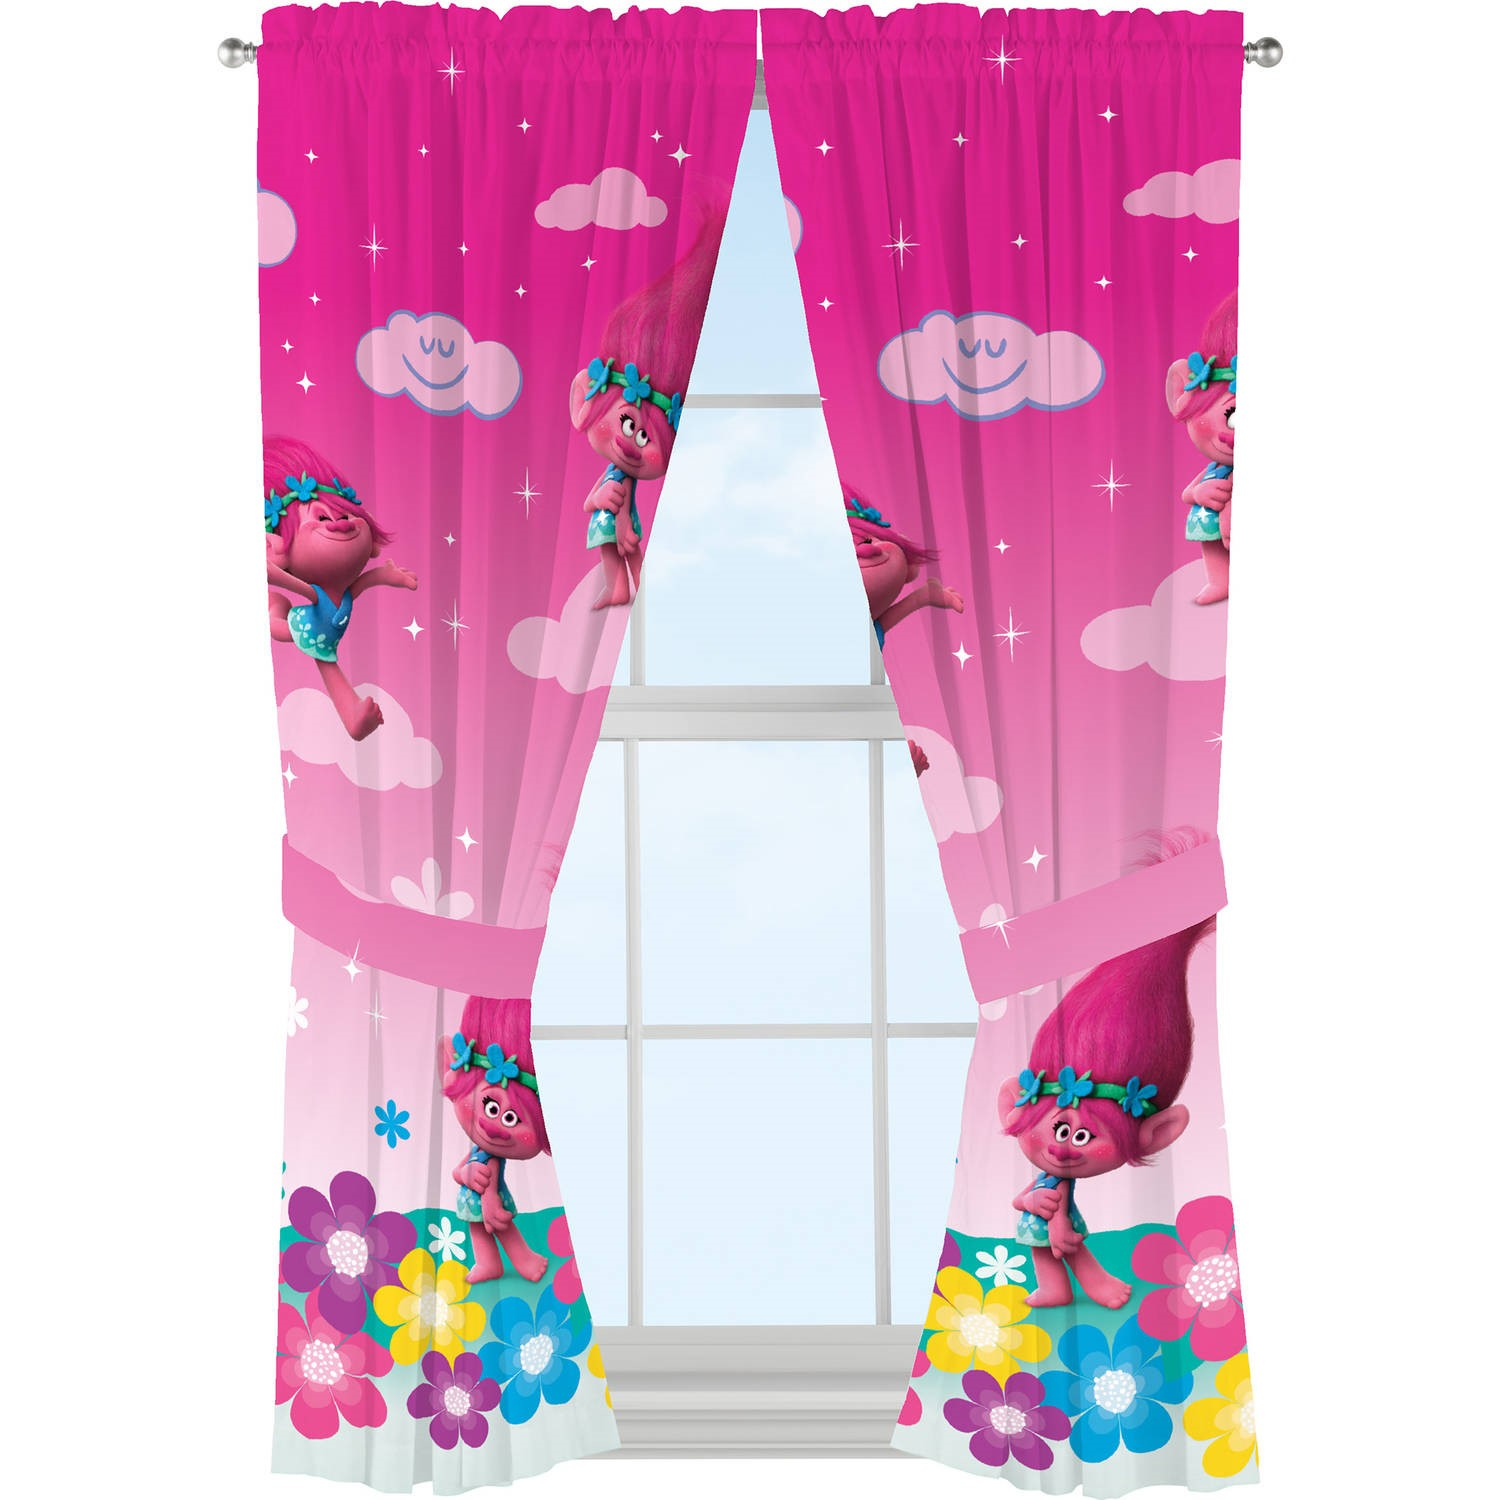 DreamWorks Trolls Jumping Rainbows Girls Bedroom Curtains, 1 Each